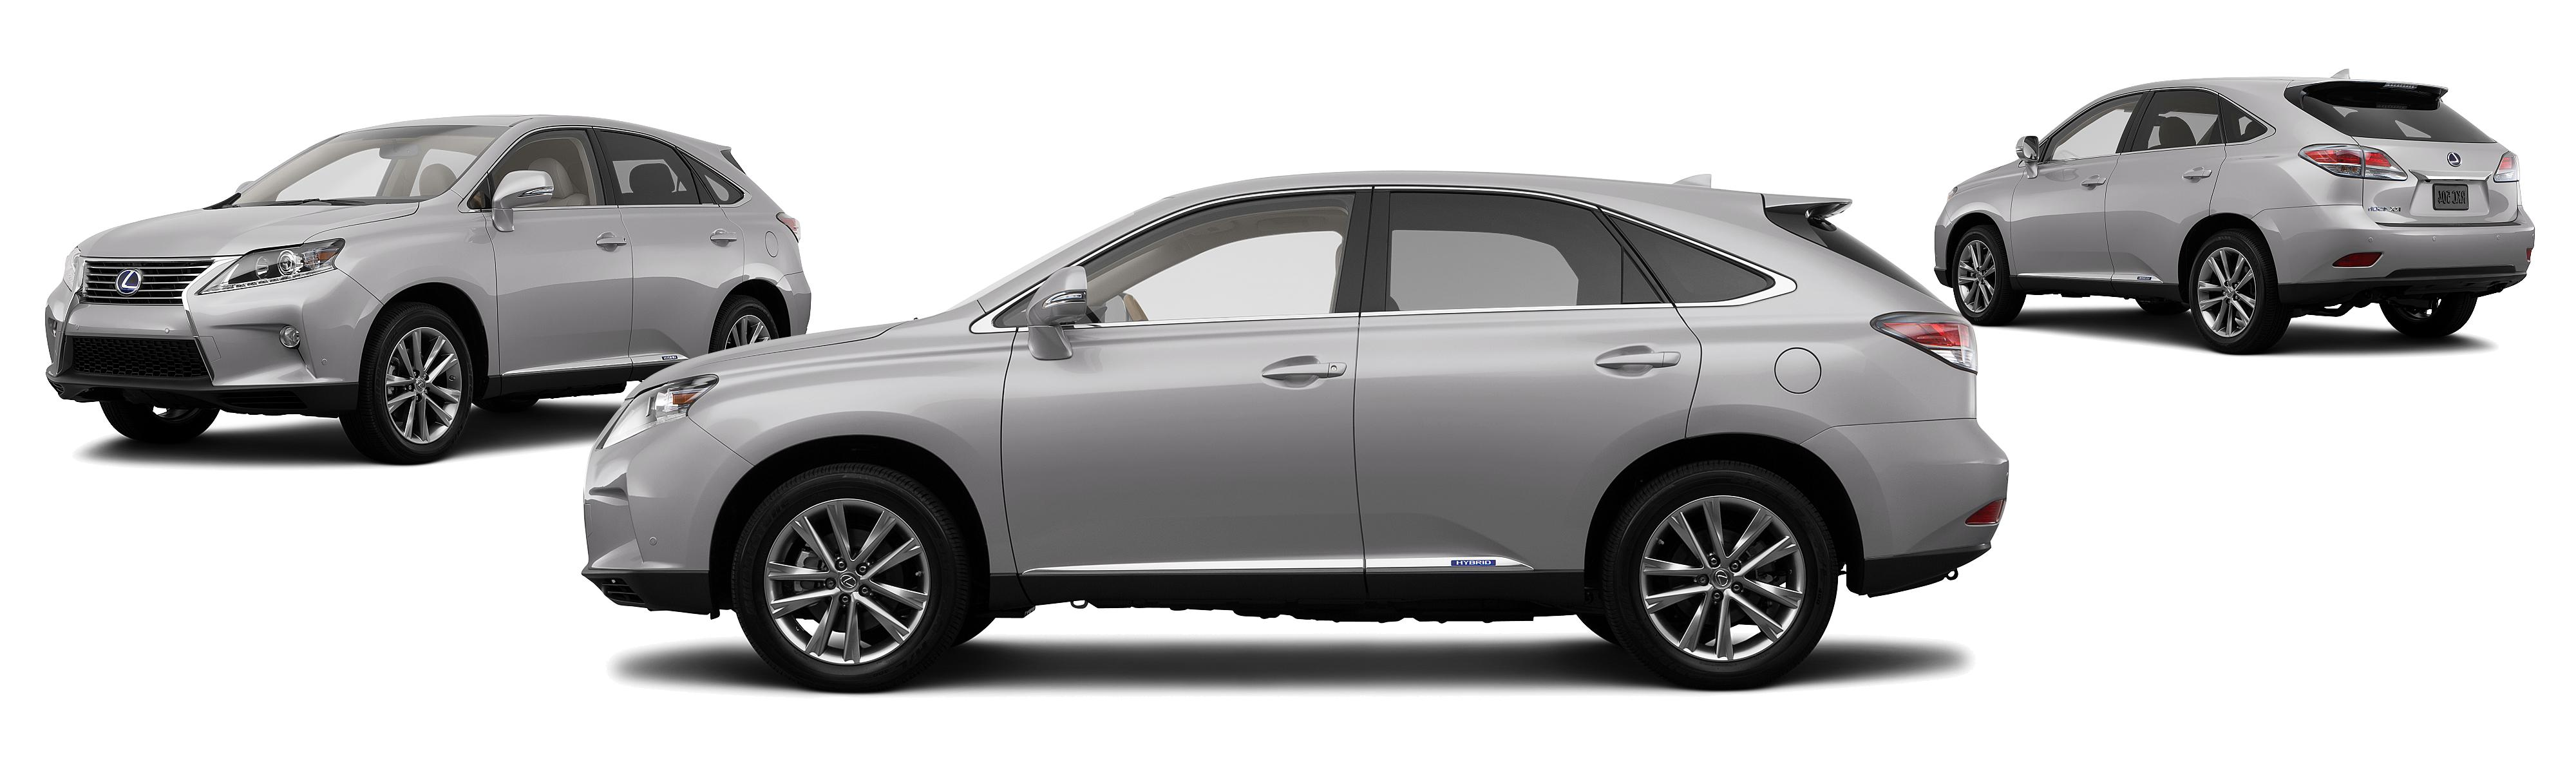 best show new april jeep top bottom consumer auto lexus annual news survey at international suv rx puts in performing introduced york reliability the business b reports named is brands a toyota